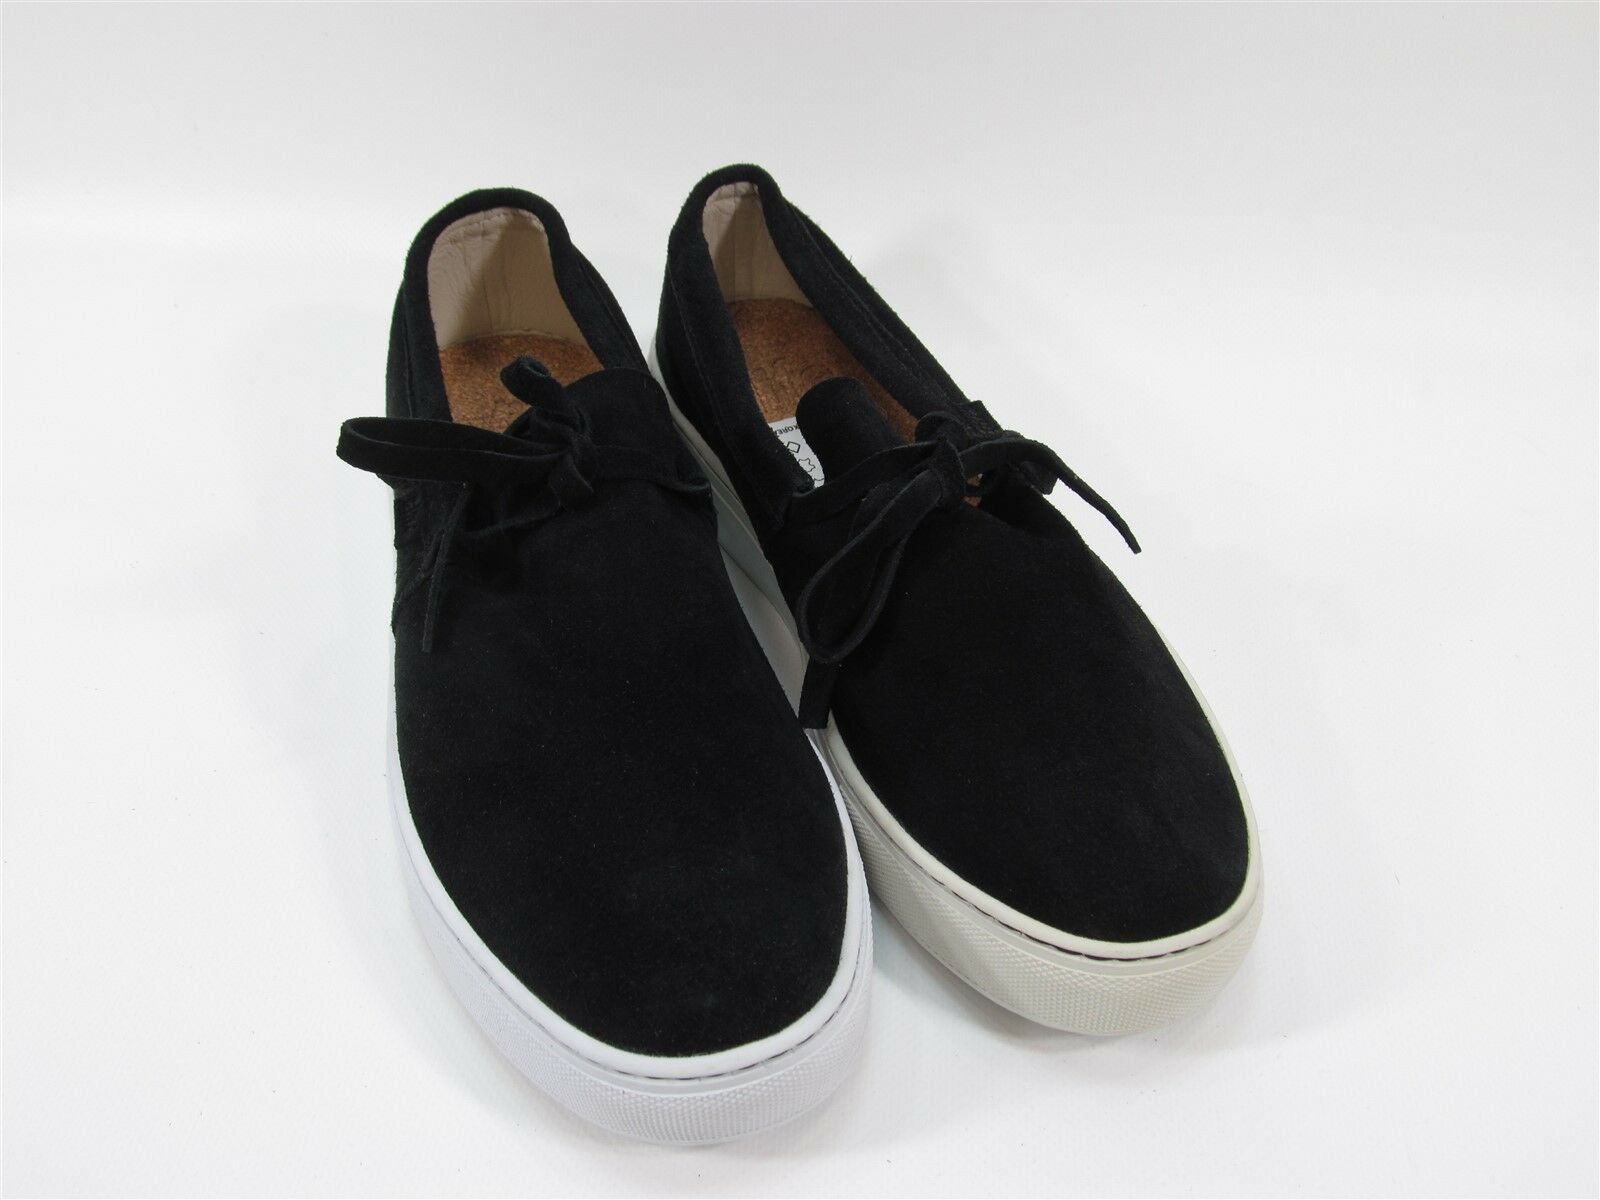 ALIFE MOC SUEDE BLACK CASUAL SHOES SIZE 12 USA